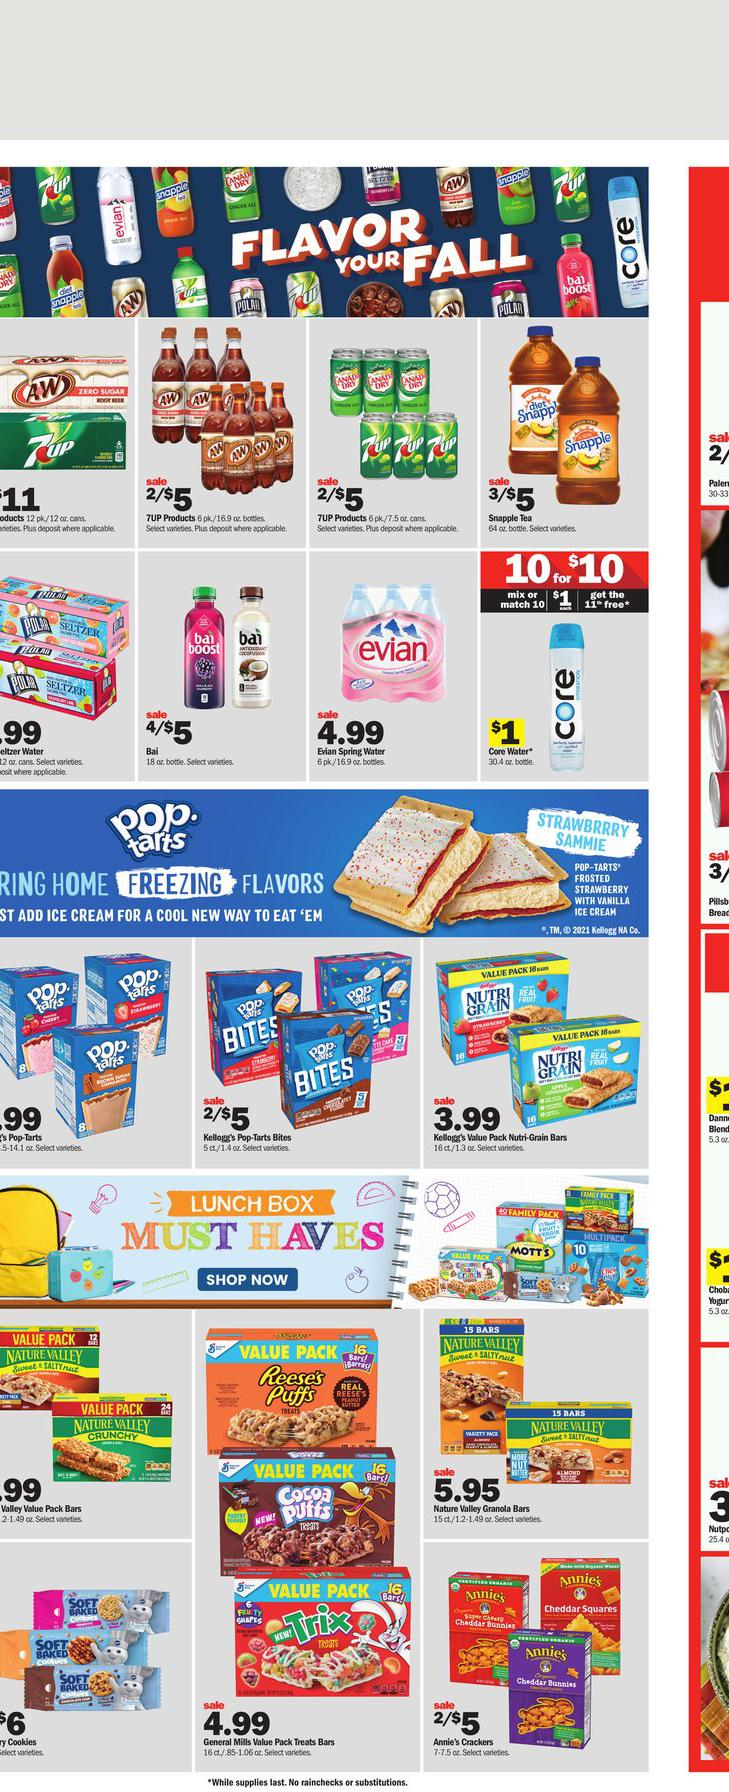 12.09.2021 Meijer ad 9. page